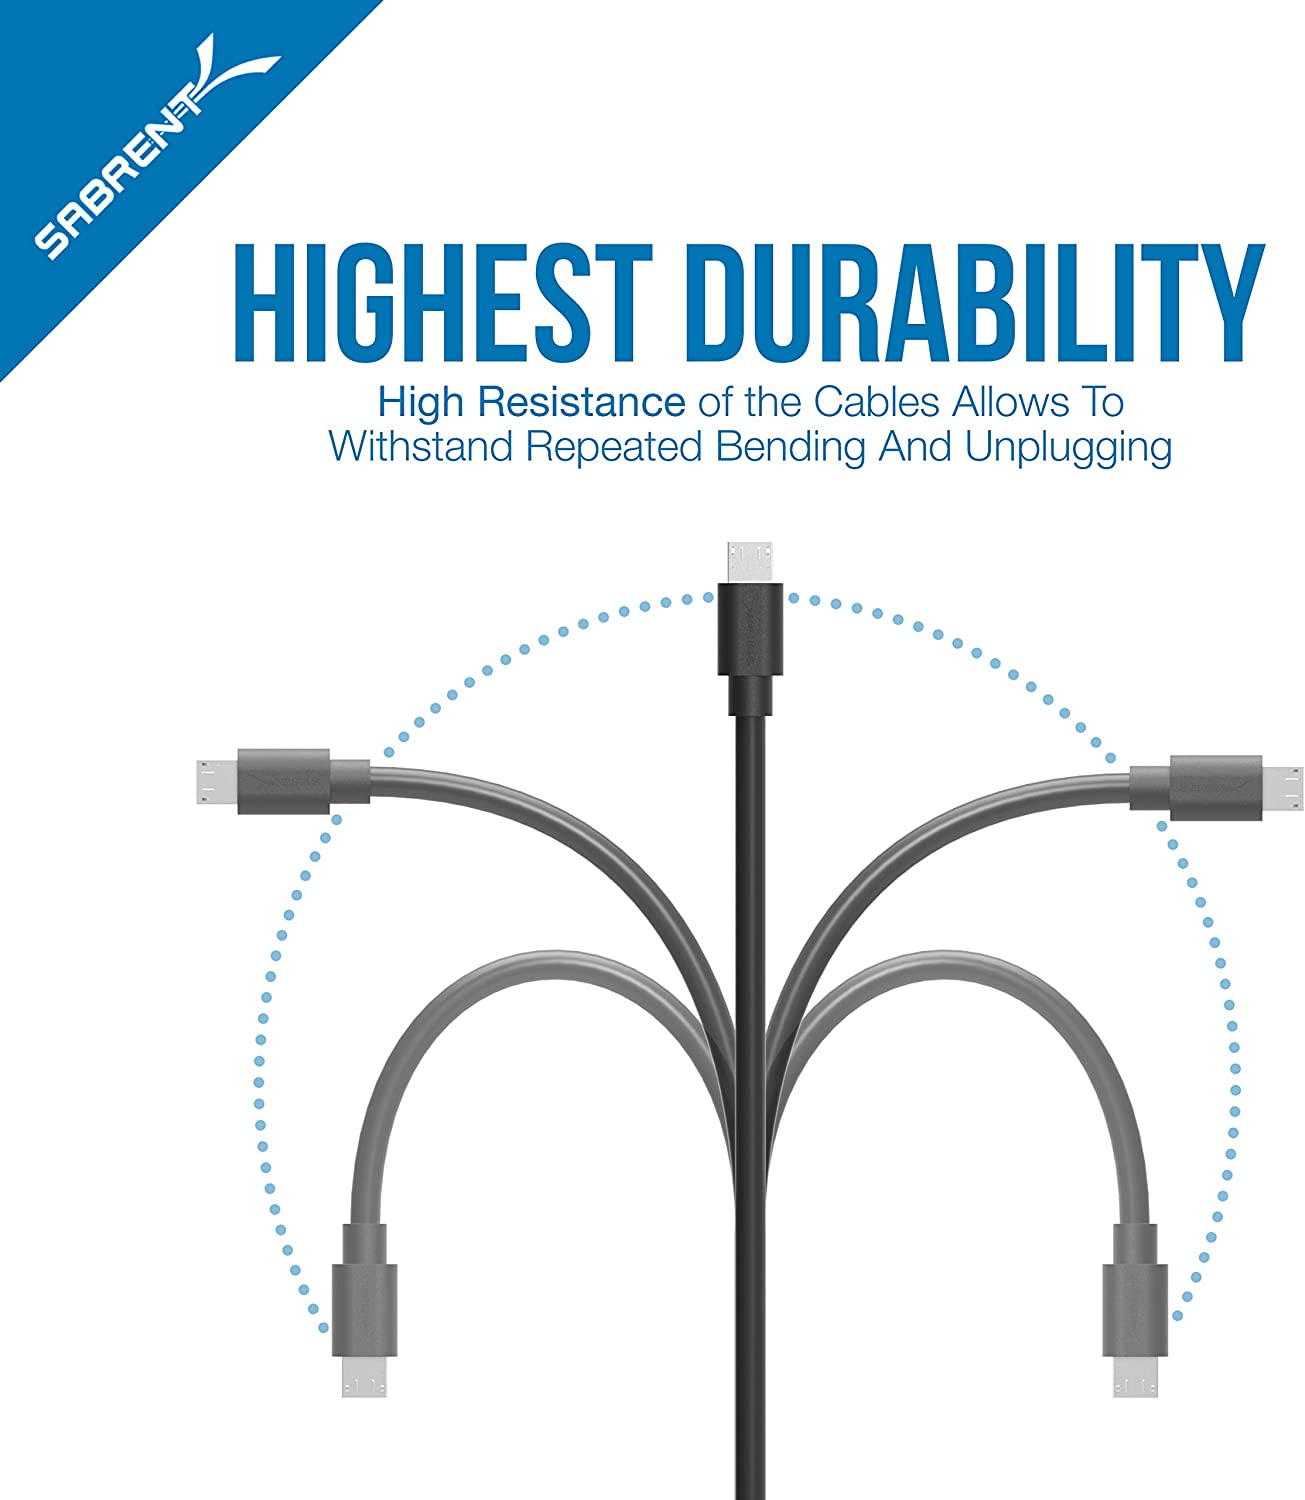 Sabrent [6-Pack] 22AWG Premium 1ft Micro USB Cables High Speed USB 2.0 A Male to Micro B Sync and Charge Cables [Black] (CB-UM61)